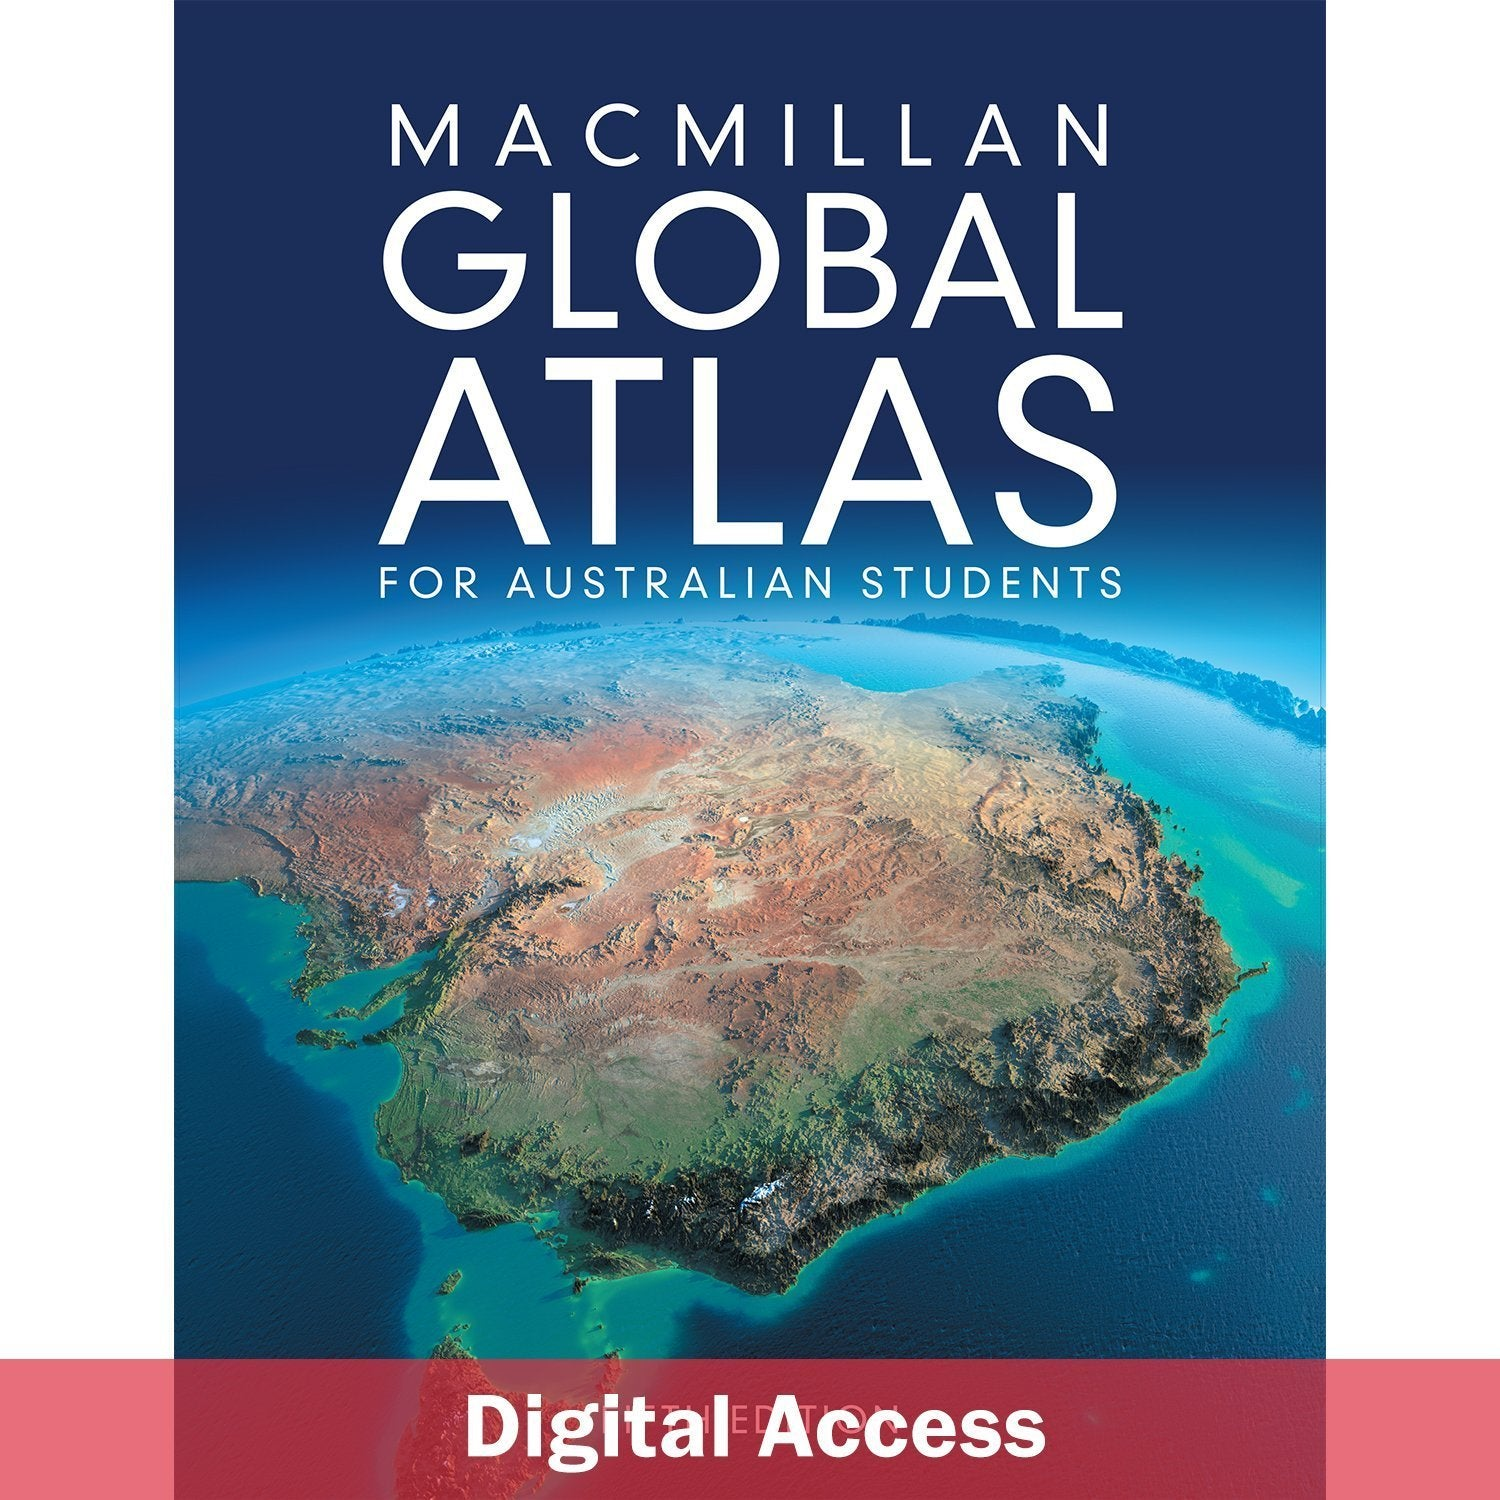 Macmillan Global Atlas for Australian Students Fifth Edition Teacher Digital Access